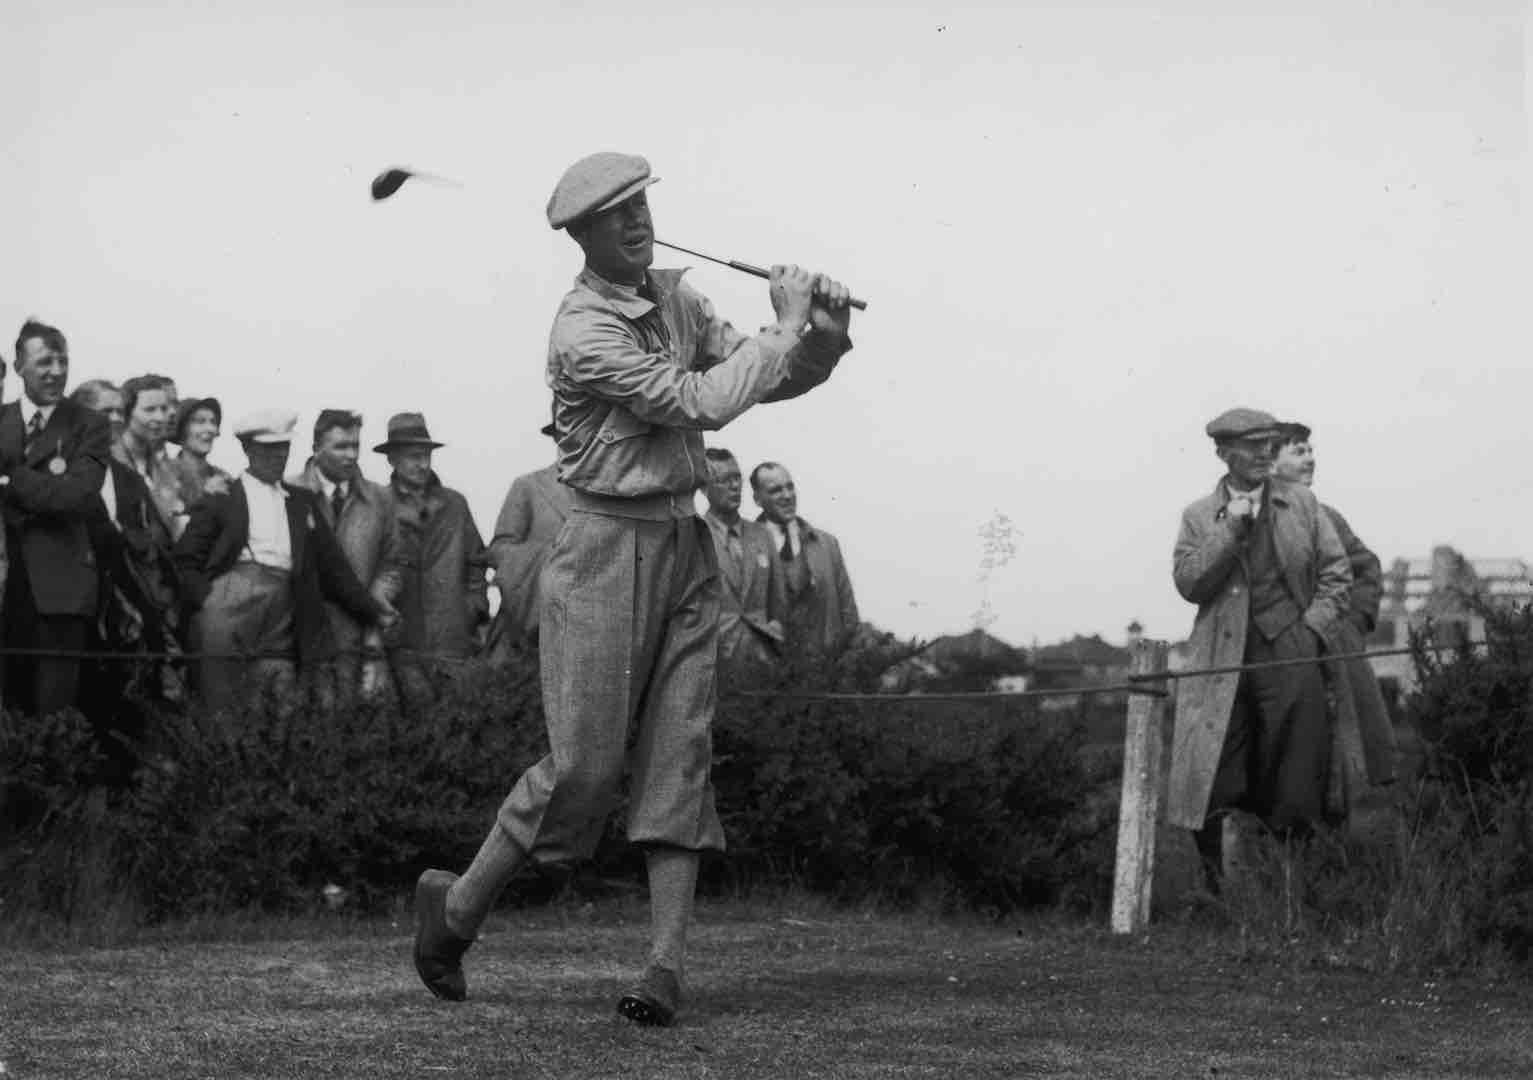 Byron Nelson's Green Jacket up for auction